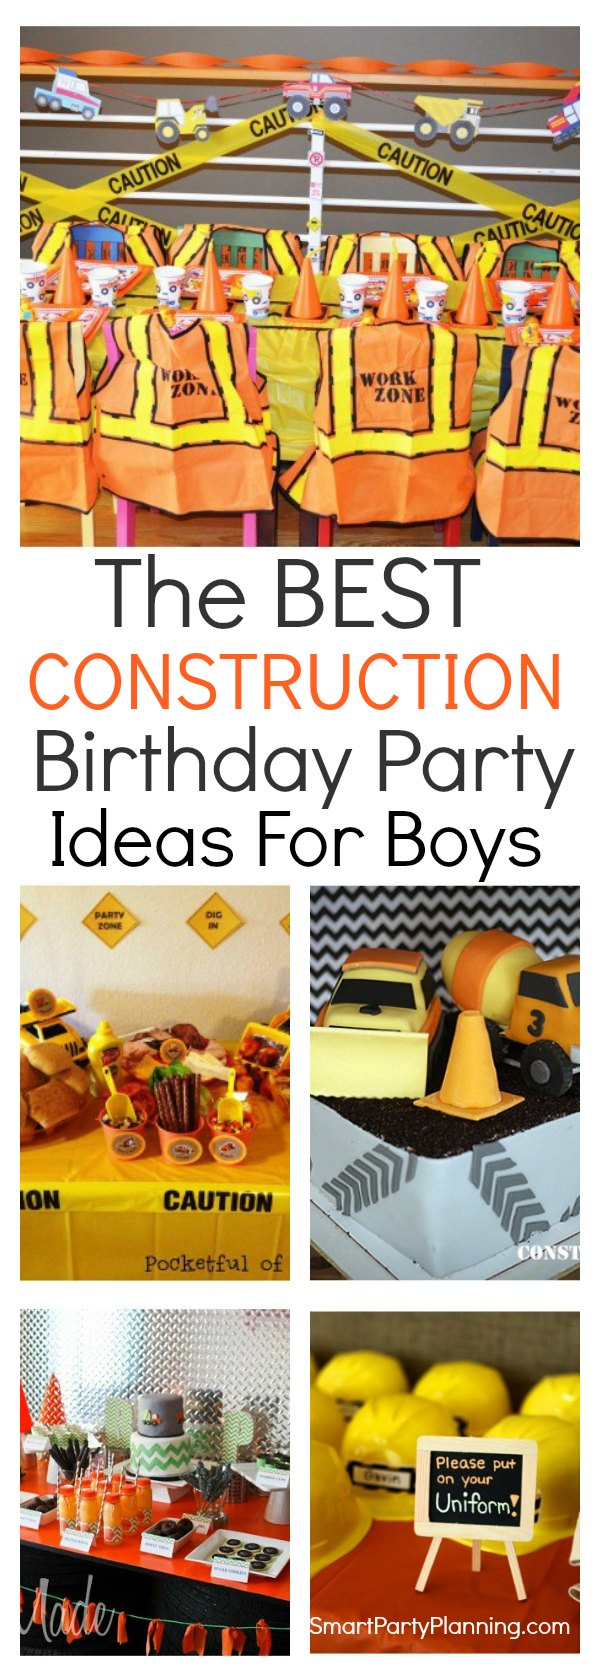 Boys are going to go nuts over these construction birthday party ideas.  With fun filled games, decorations, food and favors, this is a very popular party theme.  It's easy to create yourself with just a few simple party props and party décor.